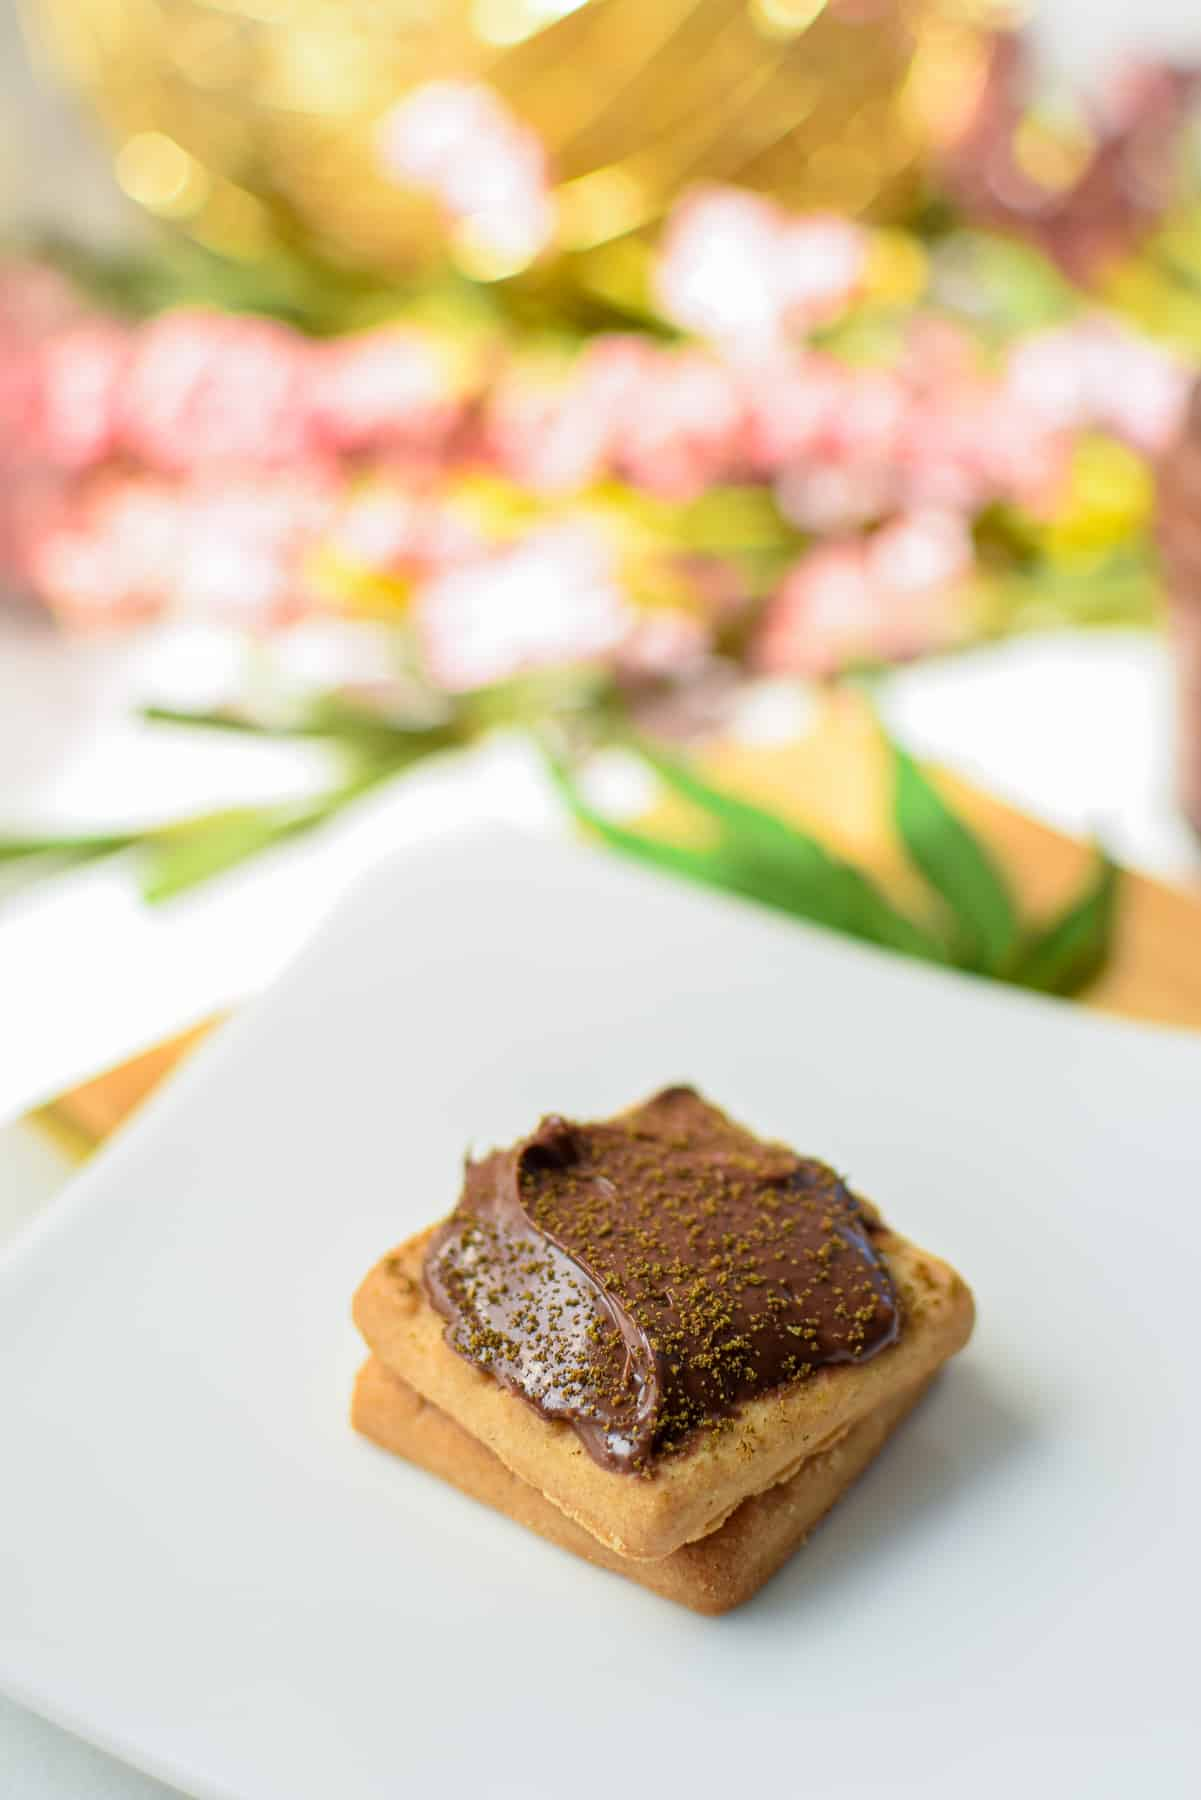 Small square cookies topped with Nutella topped with decarbed cannabis on a white plate.